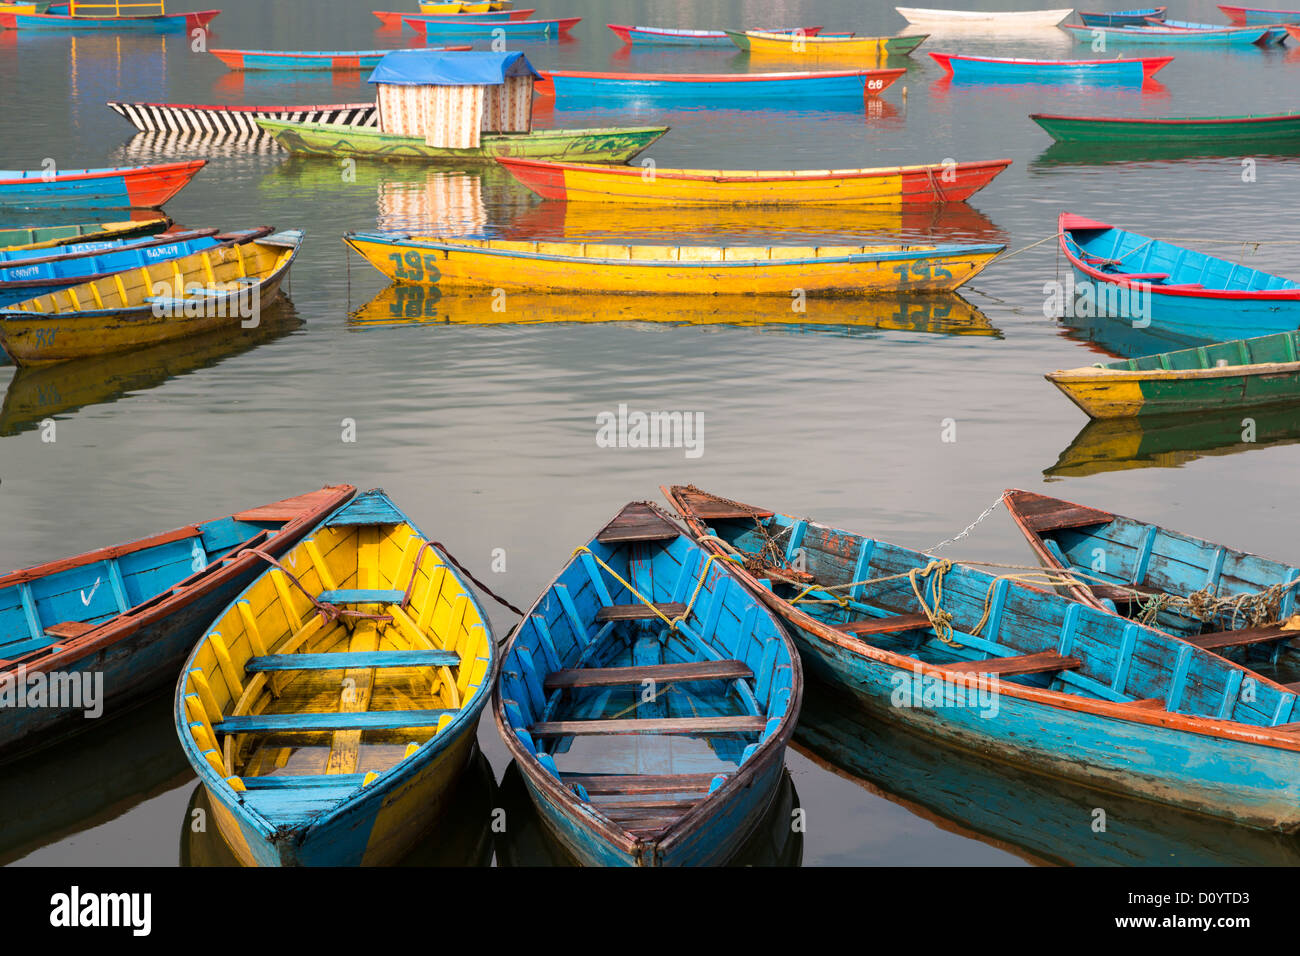 Many colorful wooden boat standing on Phewa (or Fewa) lake in Pokhara, Nepal - Stock Image